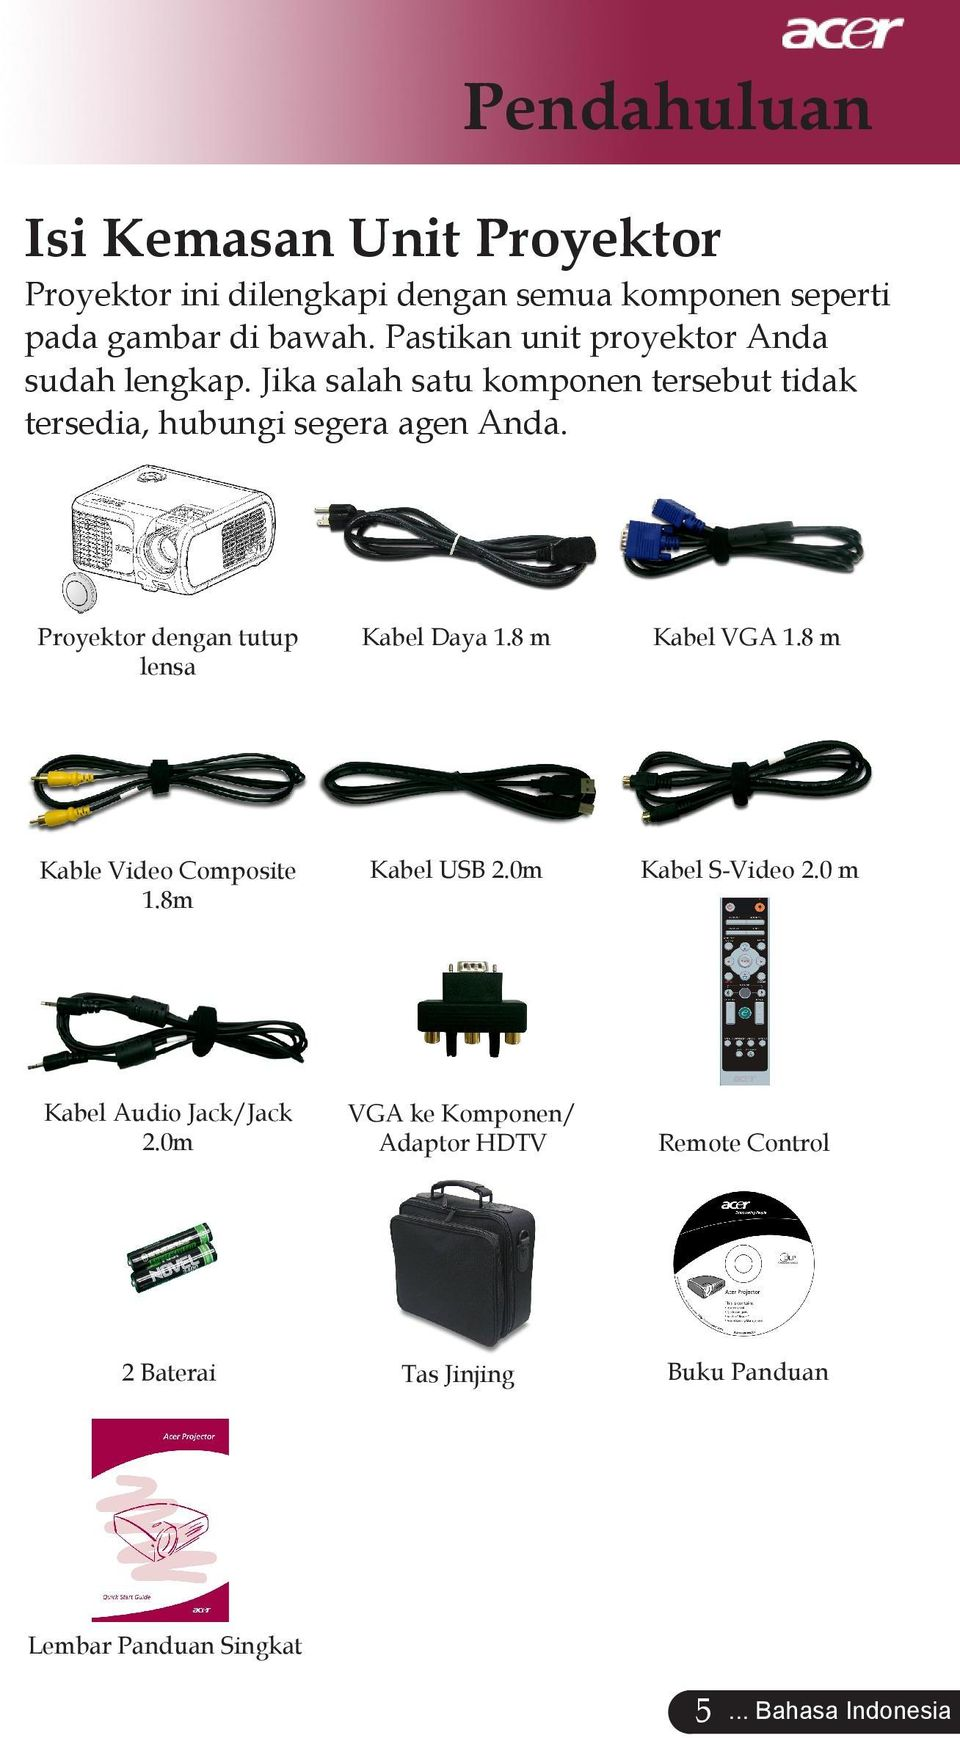 Proyektor dengan tutup lensa Kabel Daya 1.8 m Kabel VGA 1.8 m Kable Video Composite 1.8m Kabel USB 2.0m Kabel S-Video 2.